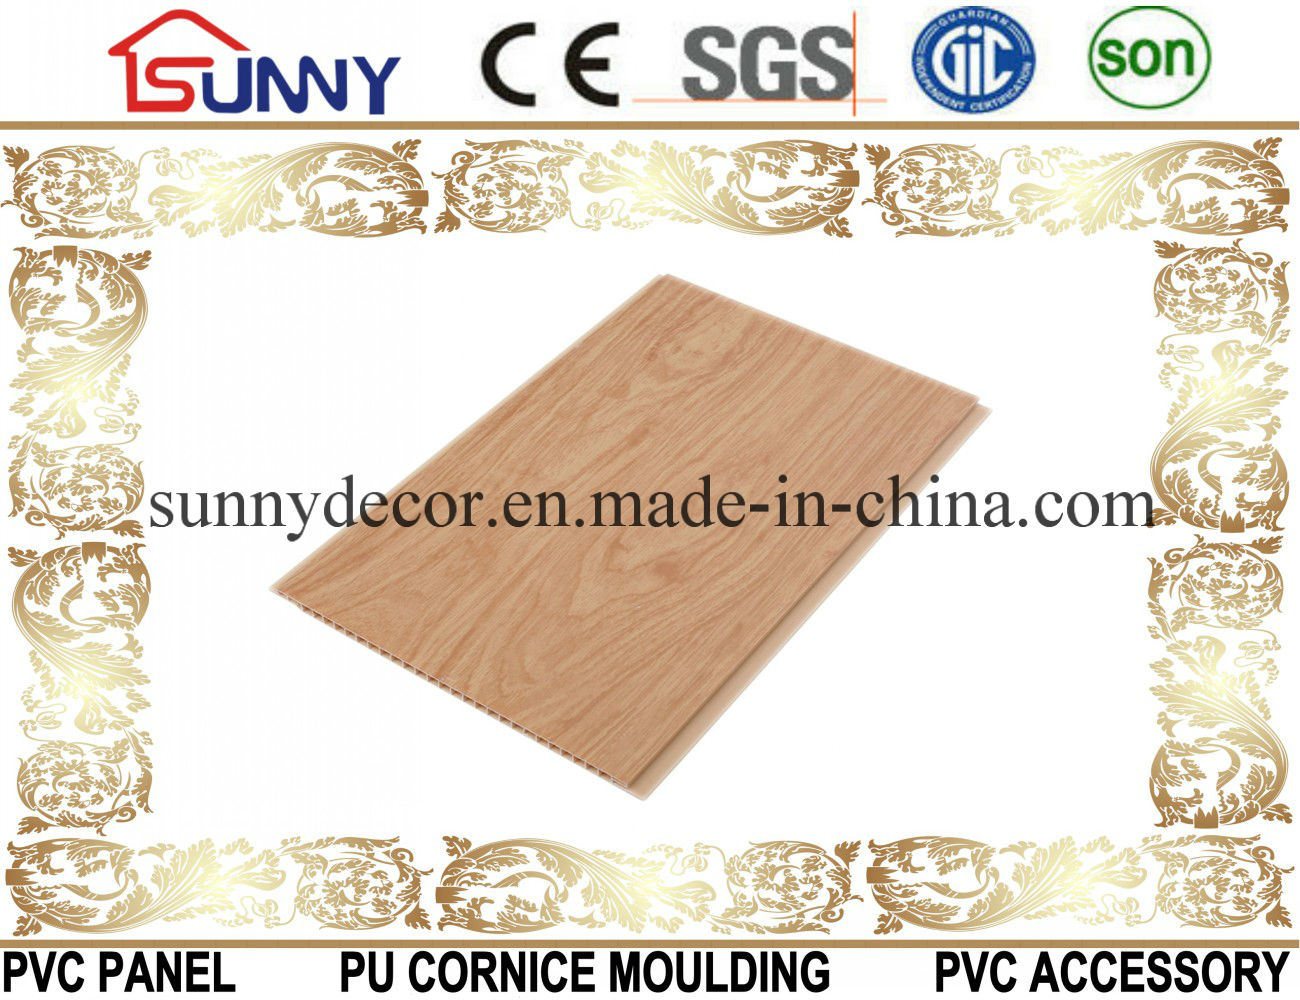 Wooden Color PVC Wall Panels, Interior Decorative PVC Tile, China Manufacturer PVC Ceilings